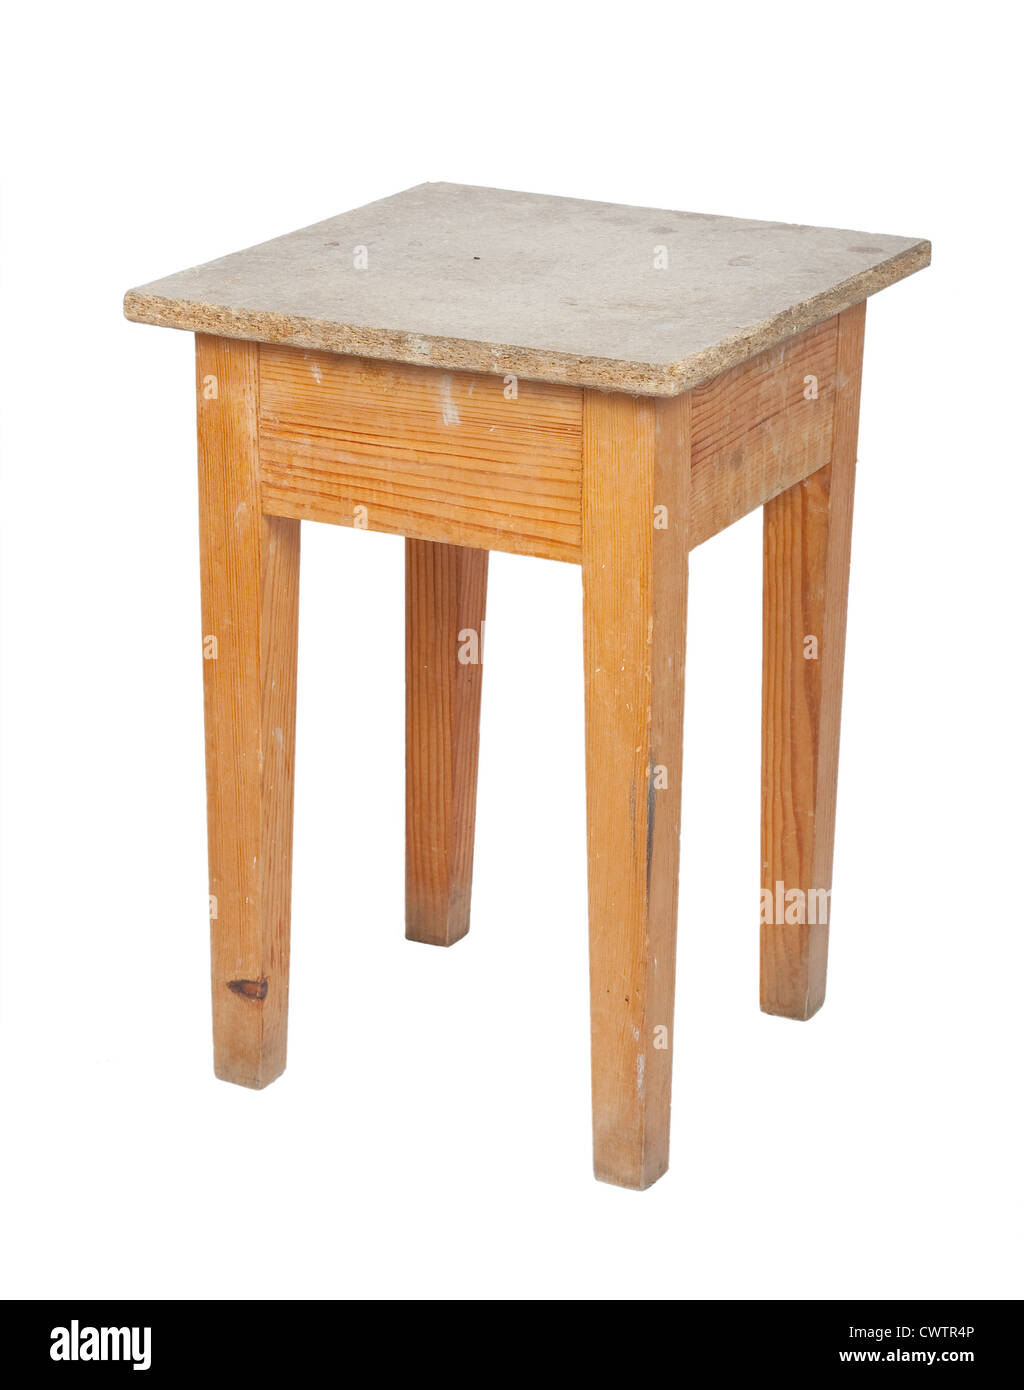 Wooden stool - Stock Image